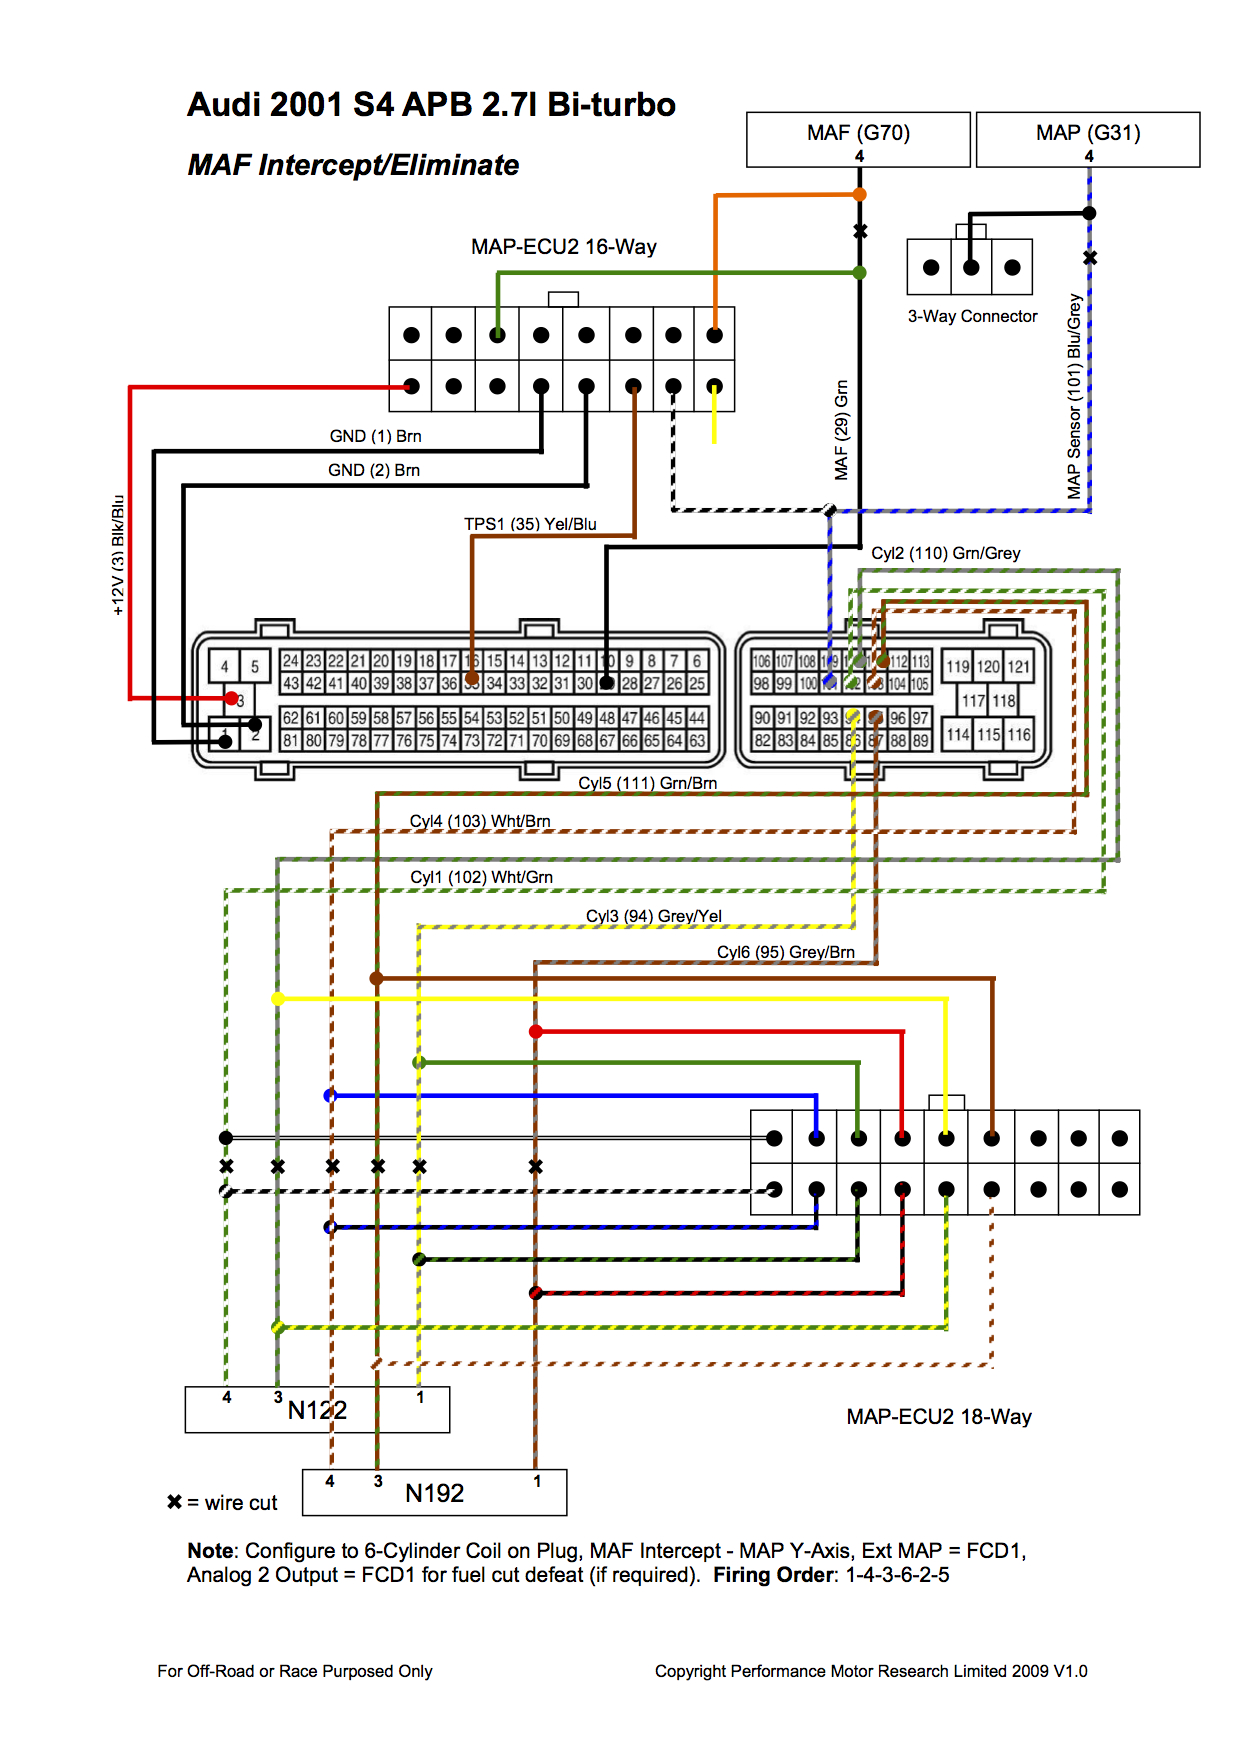 Ecu Wiring Diagrams - wiring diagrams schematics